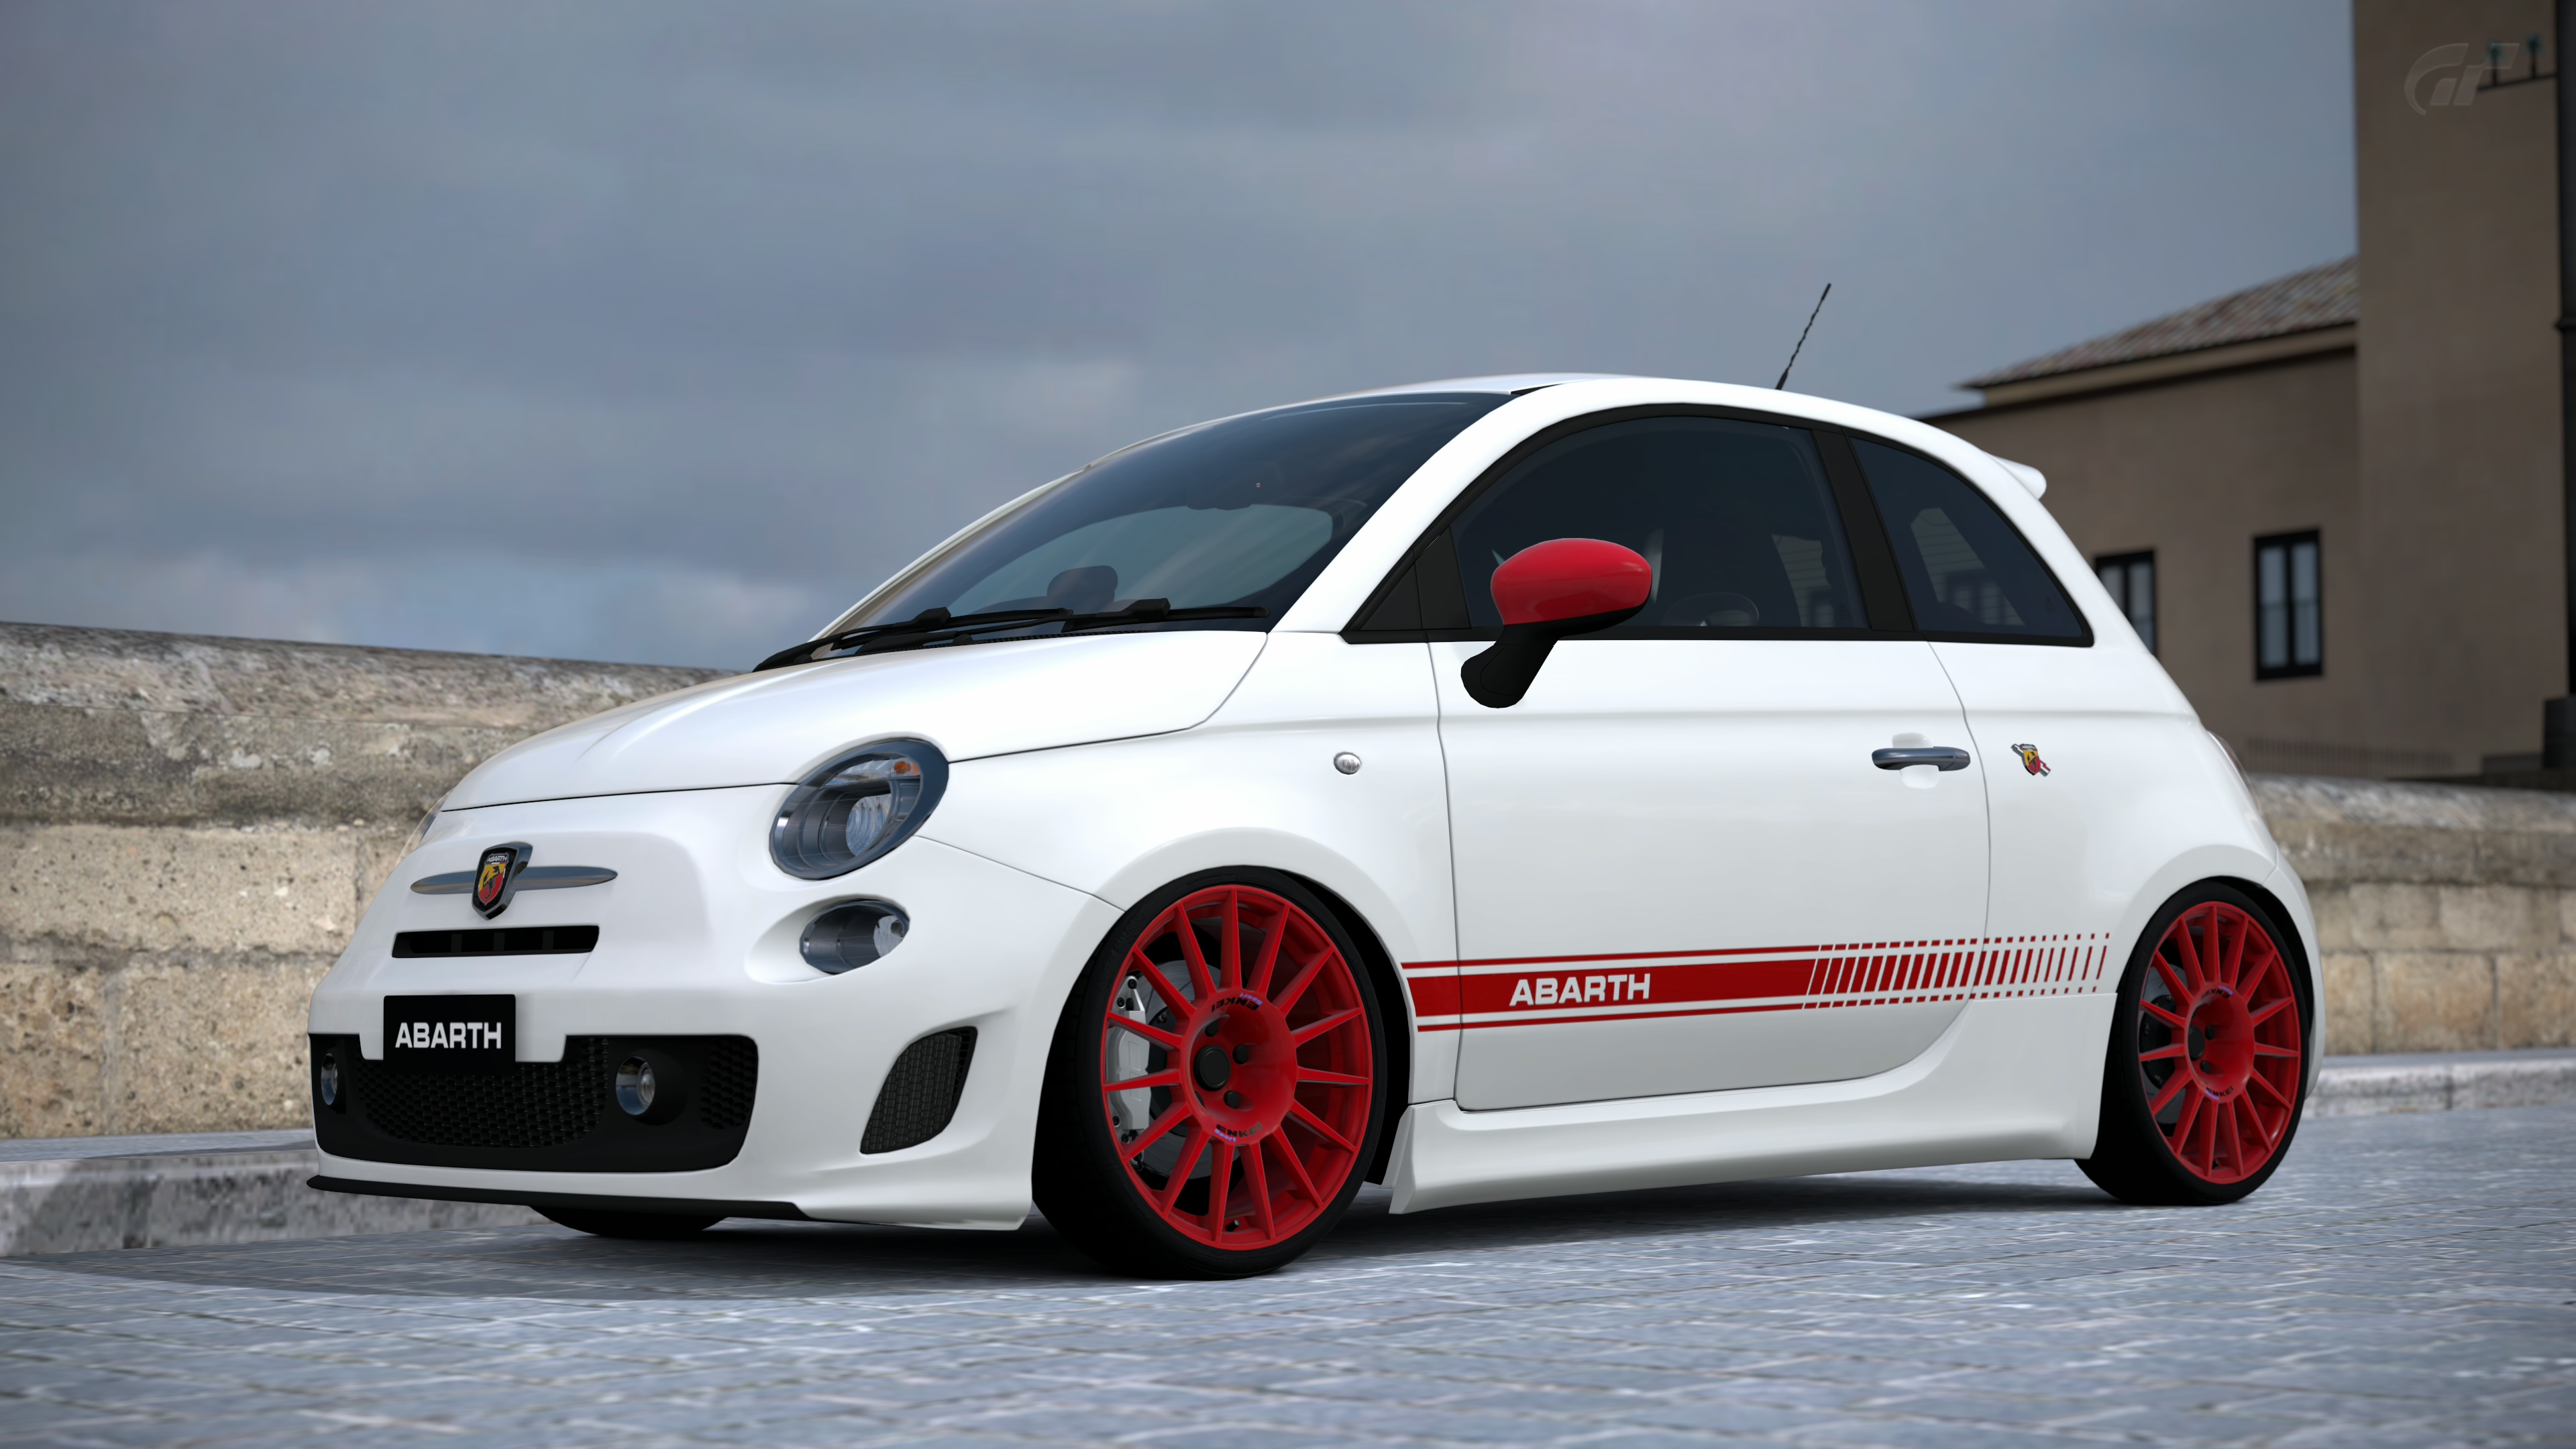 fiat 500 abarth gran turismo 6 by vertualissimo on deviantart. Black Bedroom Furniture Sets. Home Design Ideas